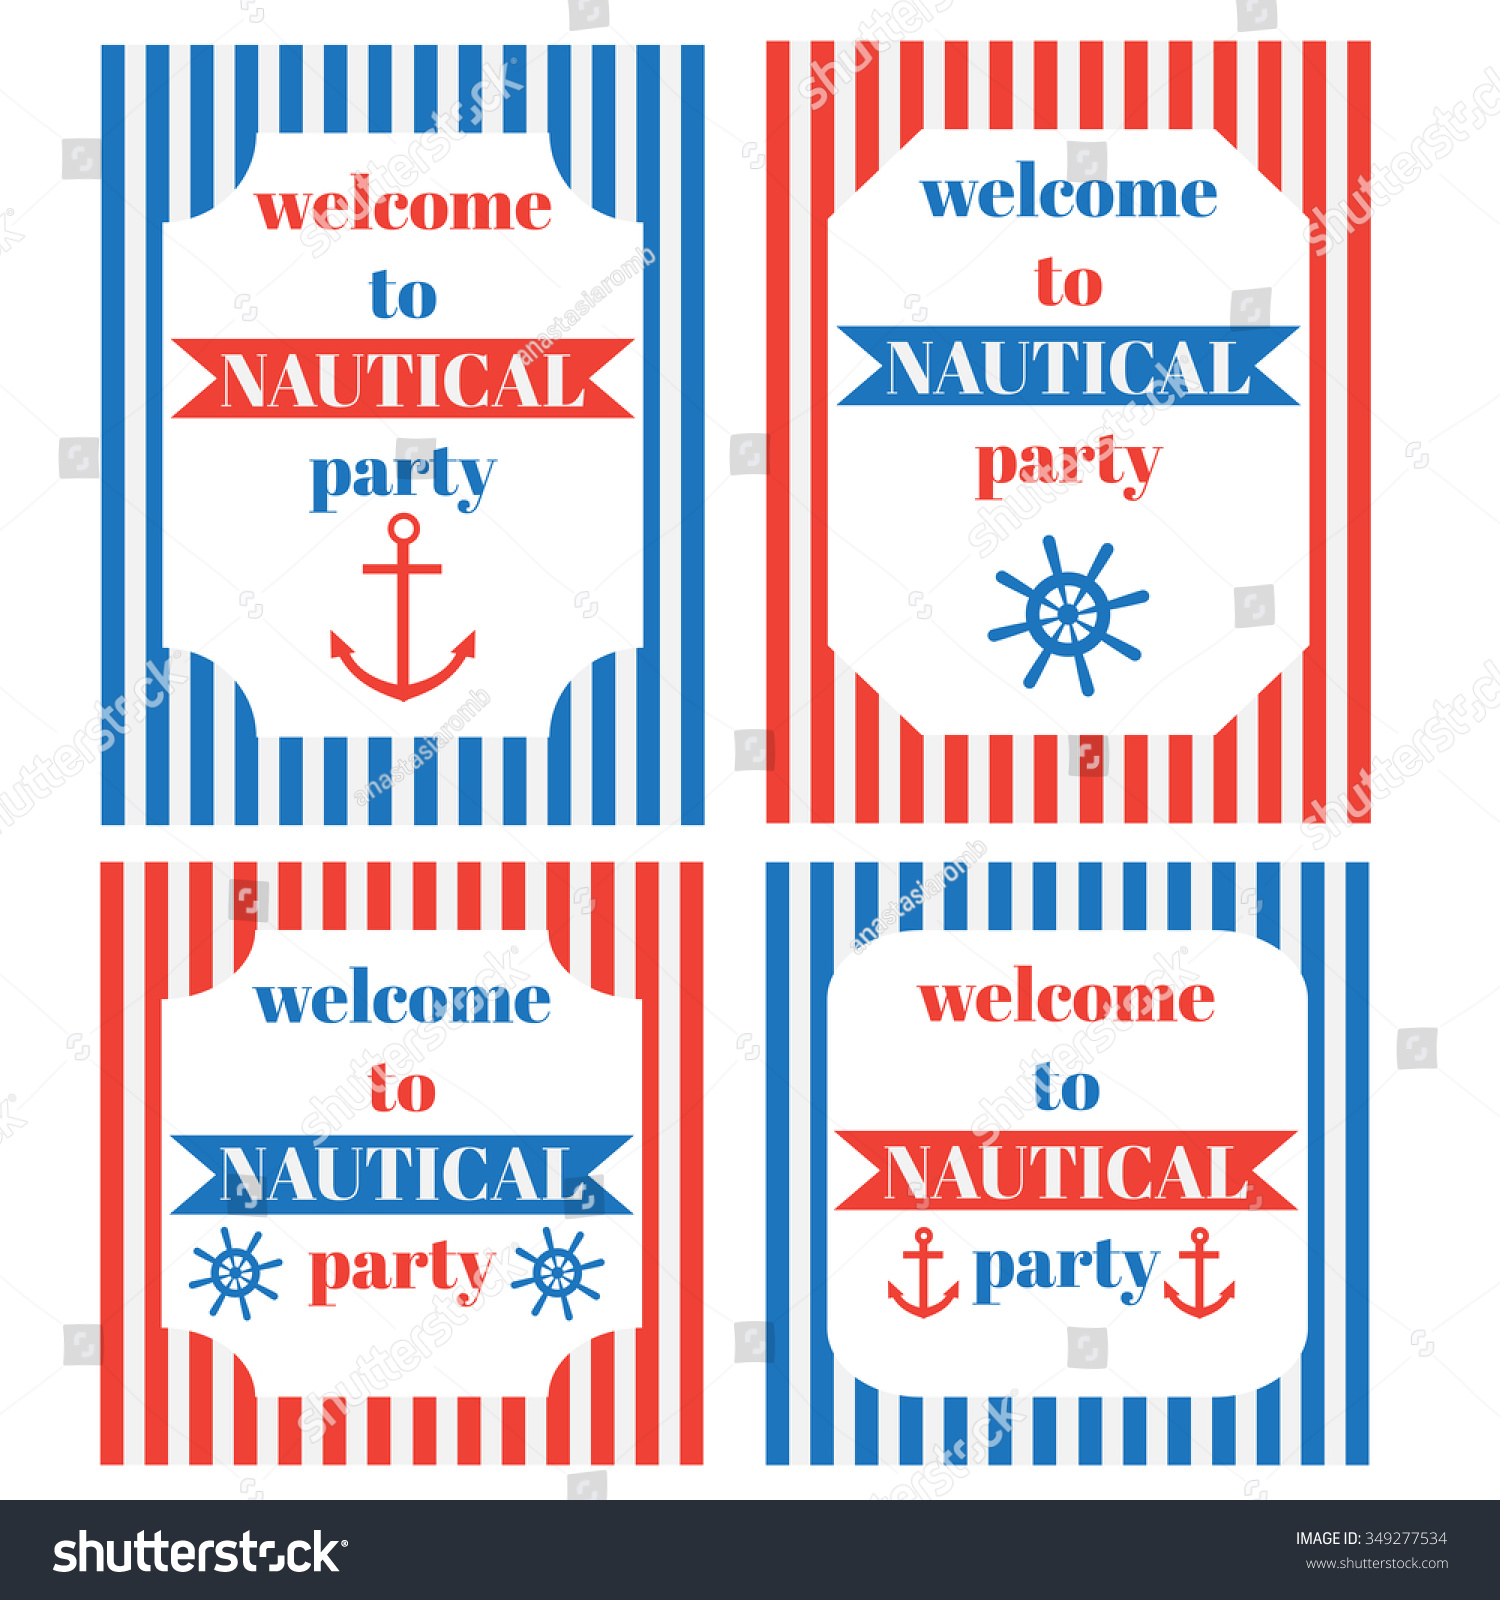 Vintage Nautical Party Invitation Marine Sailor Stock Vector ...